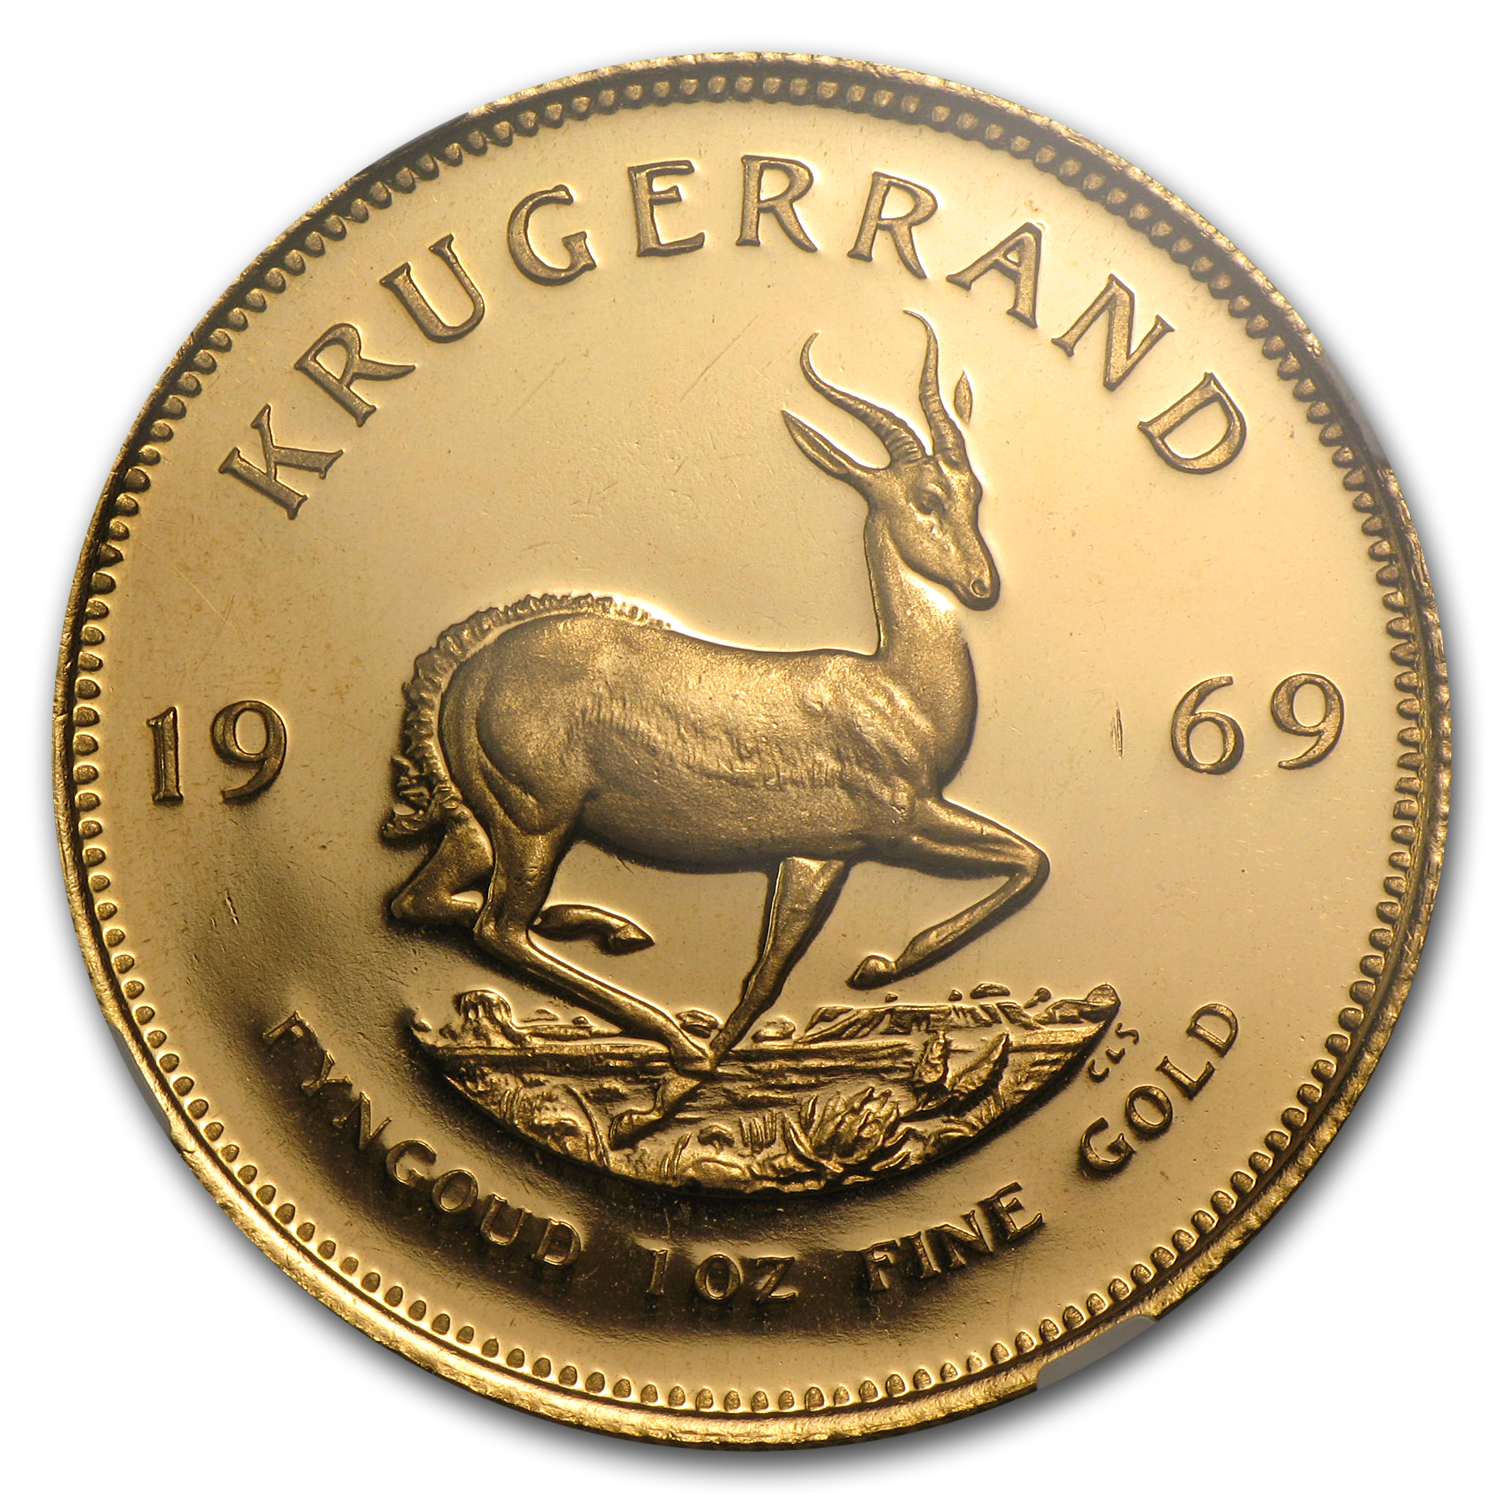 1969 1 oz Gold South African Krugerrand PF-66 UCAM NGC